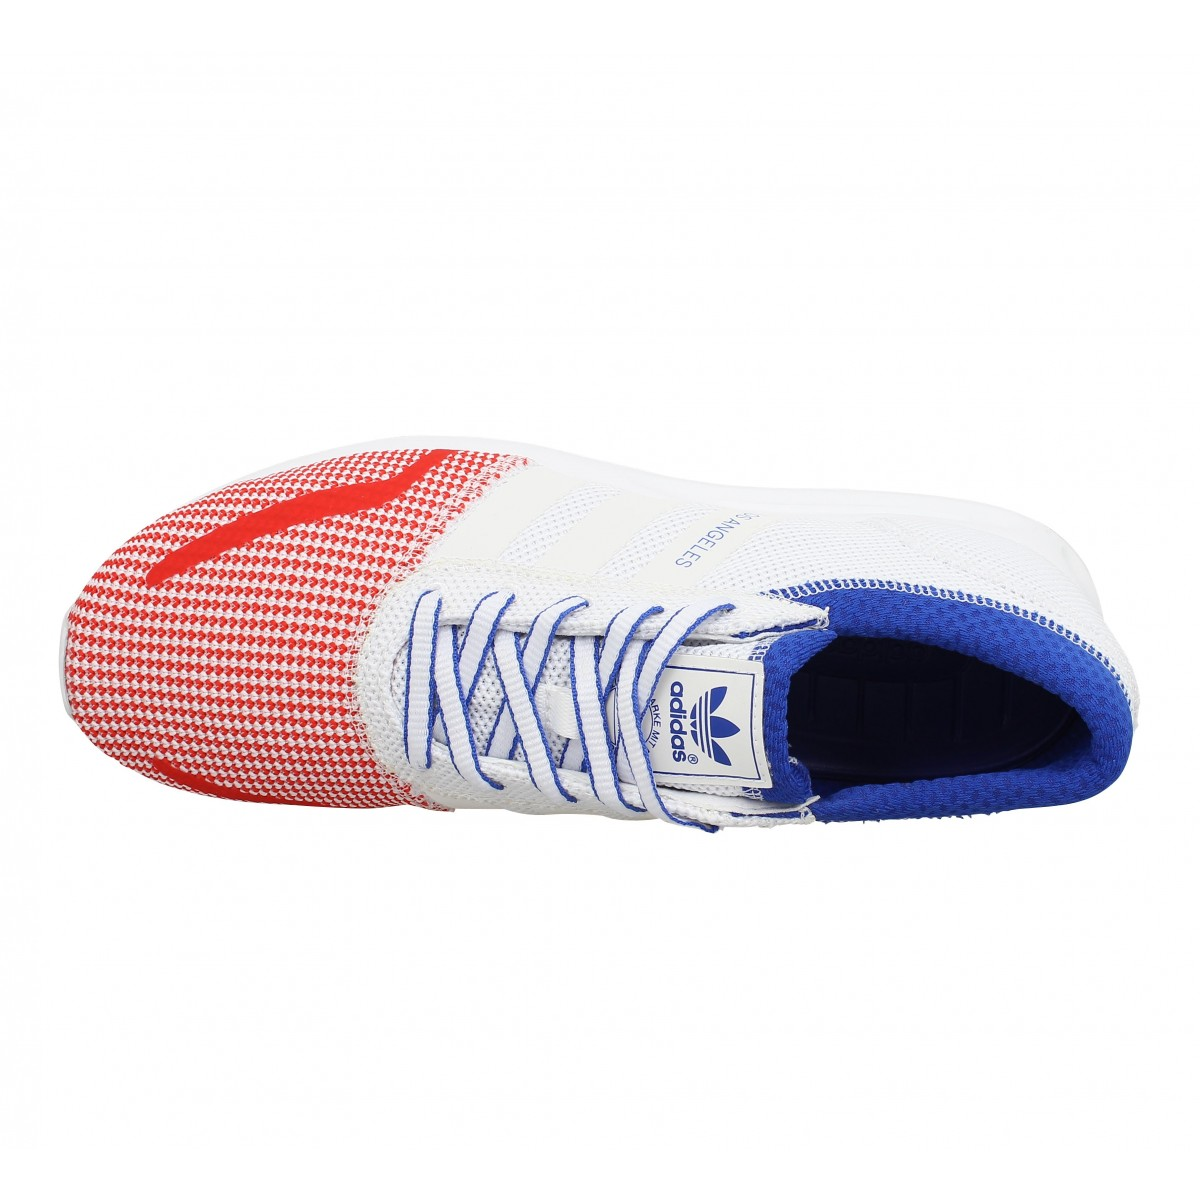 Adidas los angeles toile homme bleu blanc rouge | Fanny chaussures